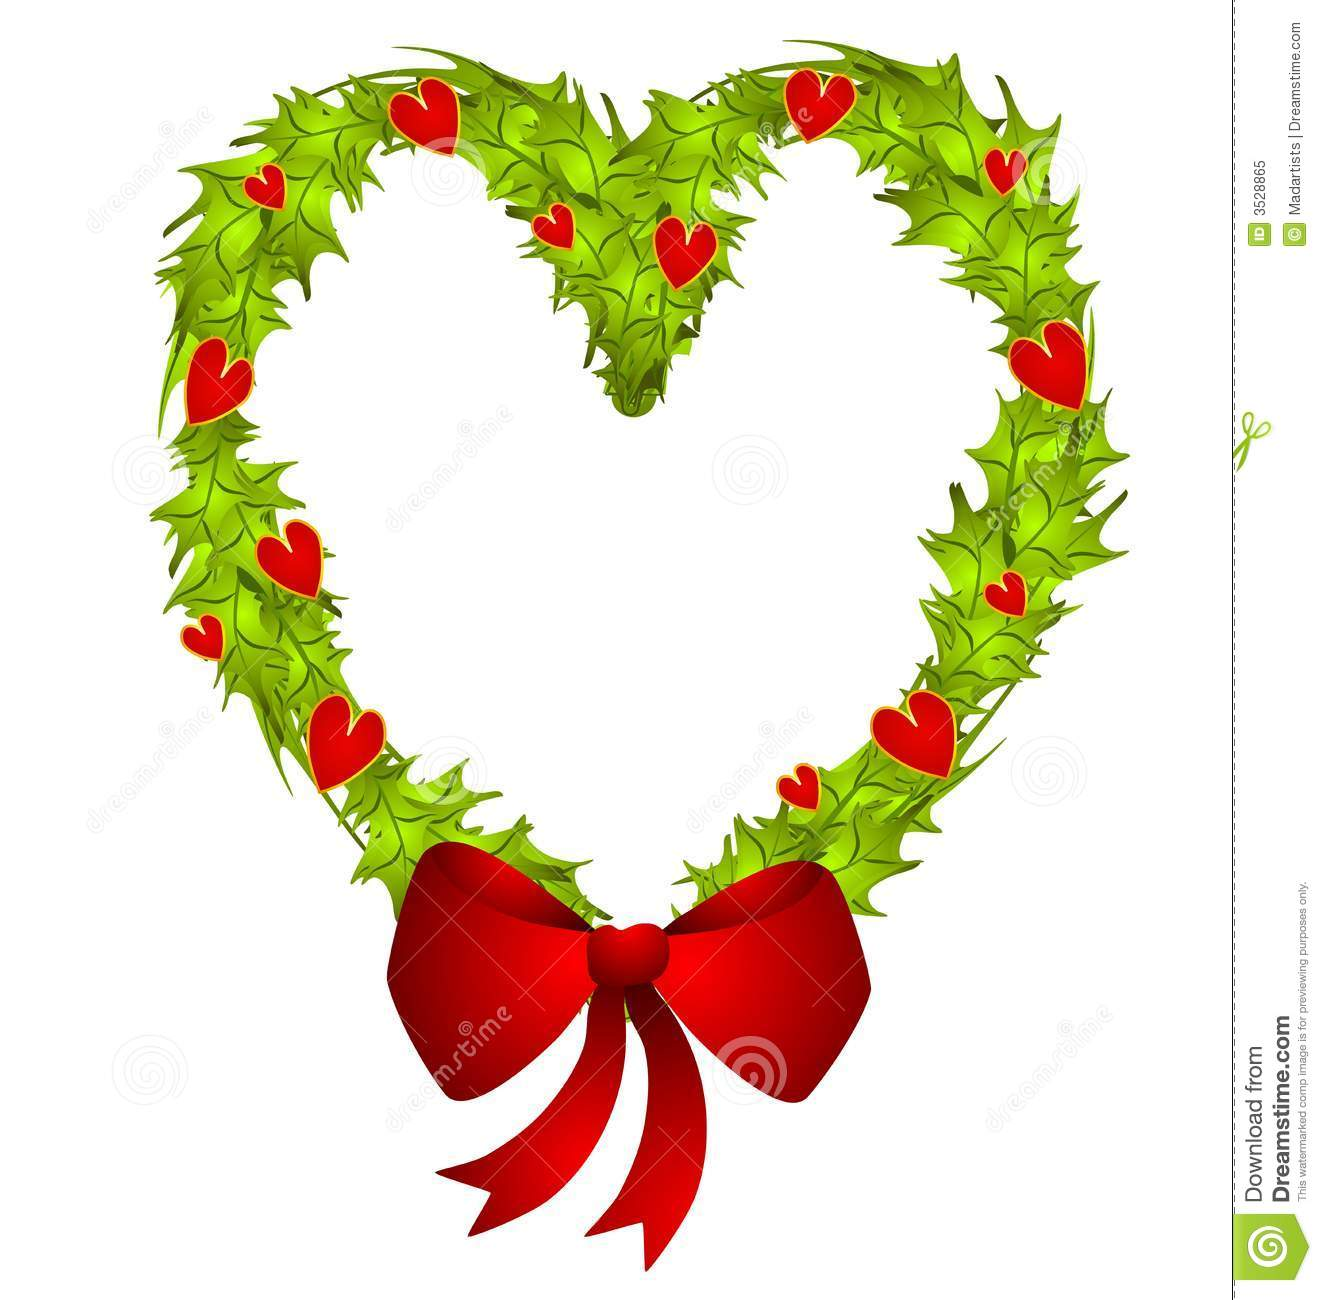 Clip Art Illustration Of A Heart Shaped Christmas Wreath With Small